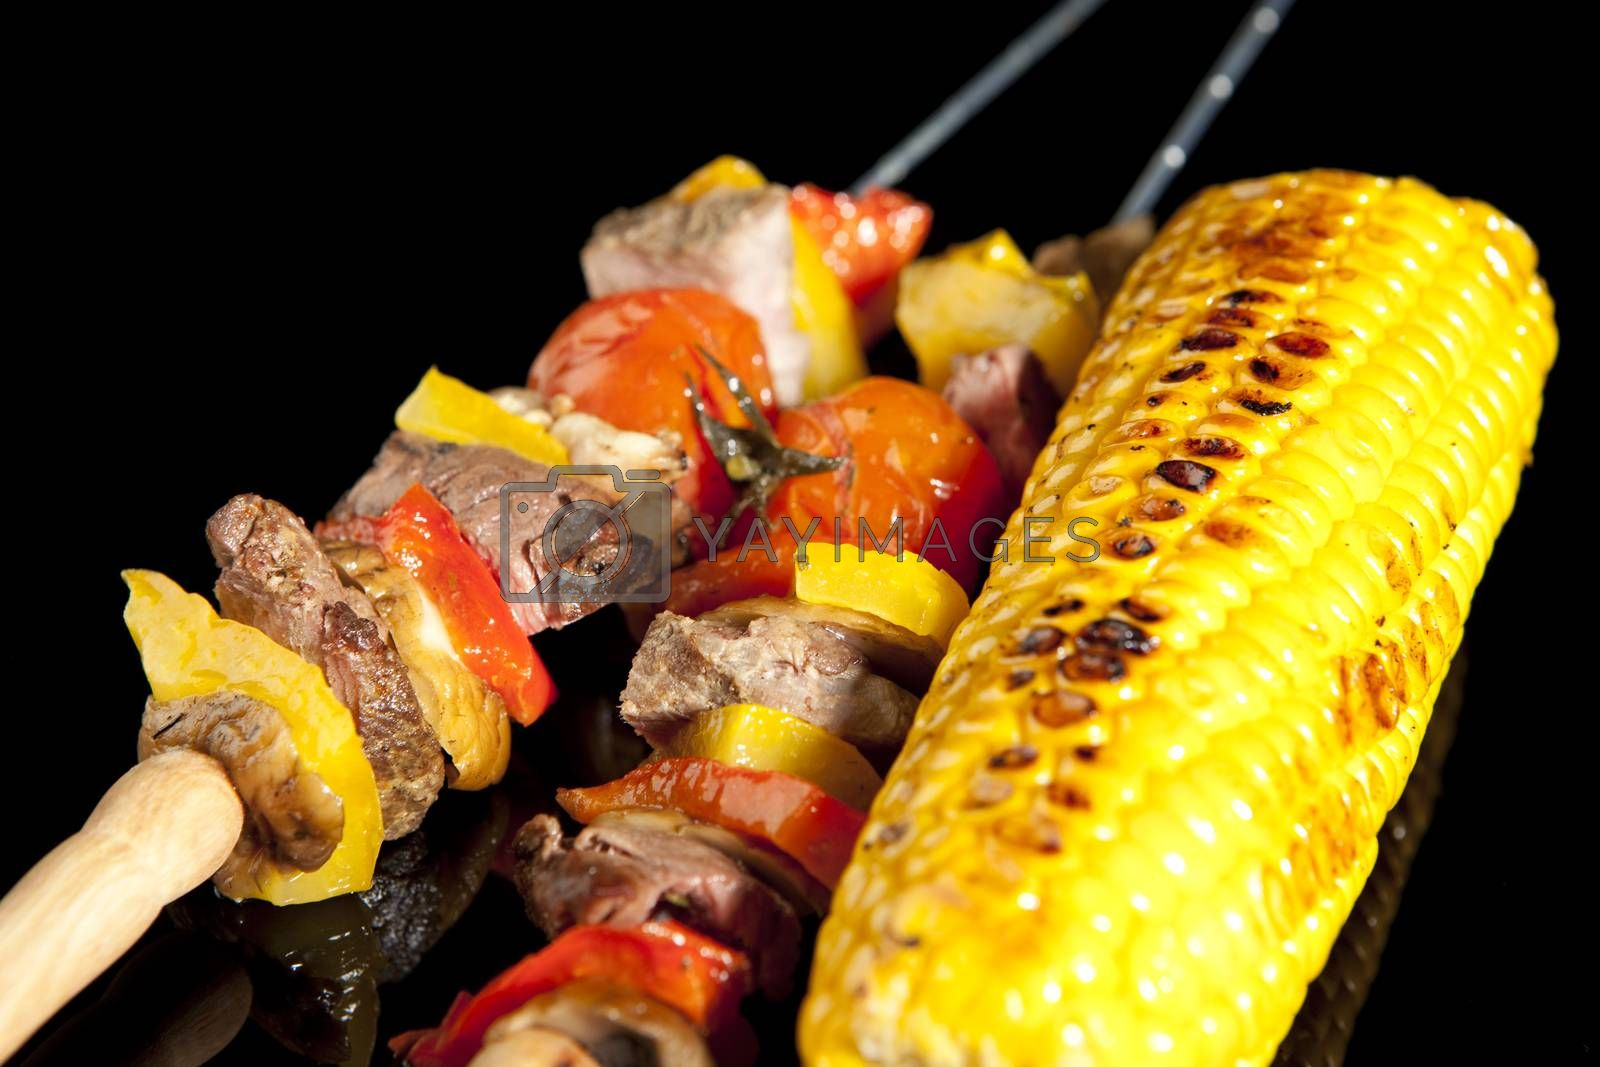 Barbeque sticks with meat, vegetables and corn